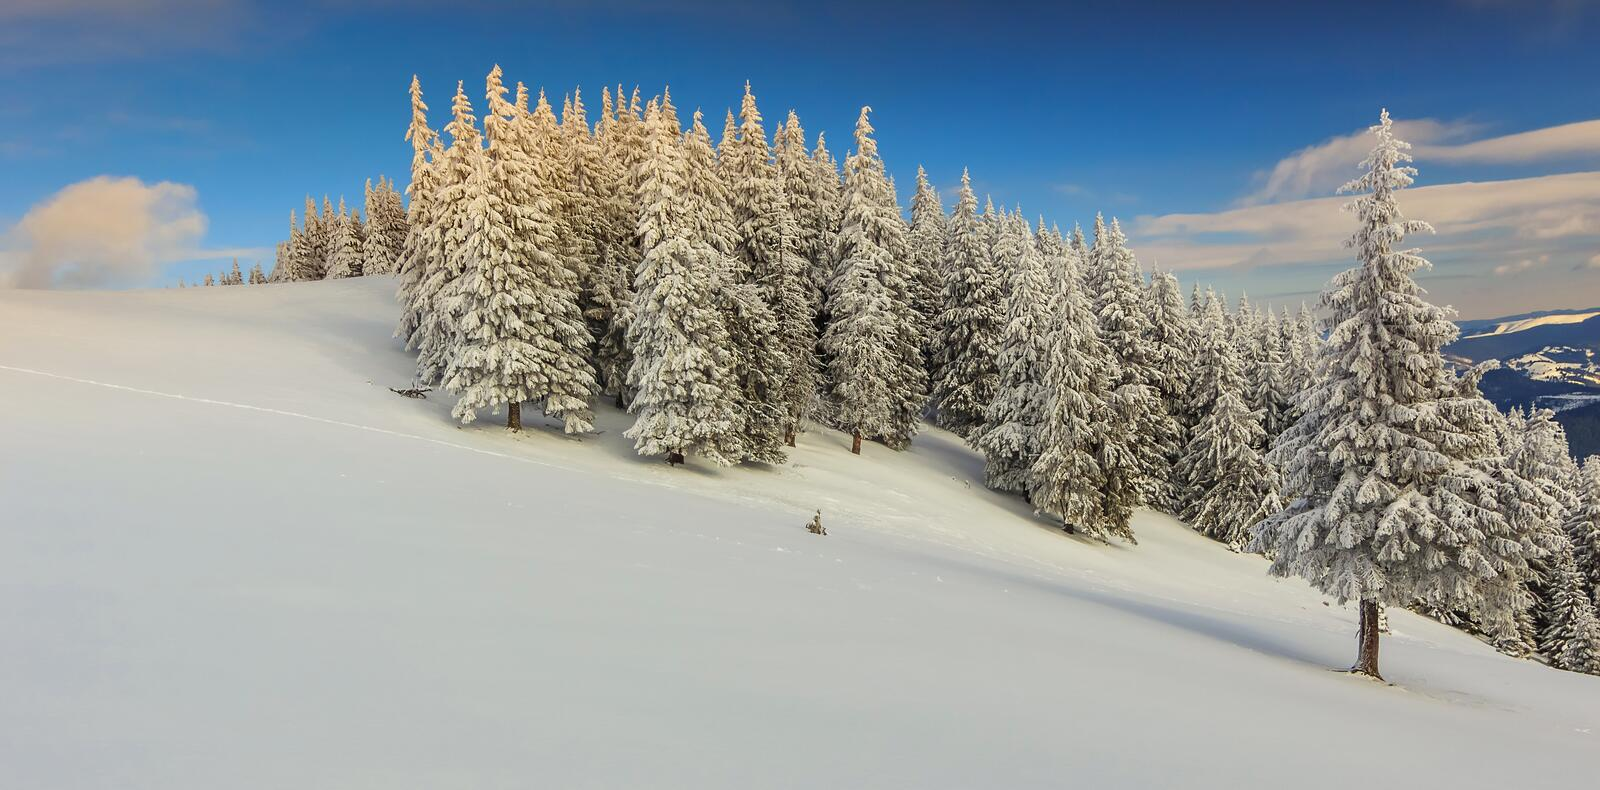 Beautiful winter landscape in the mountains,Carpathians,Transylvania,Romania stock photography